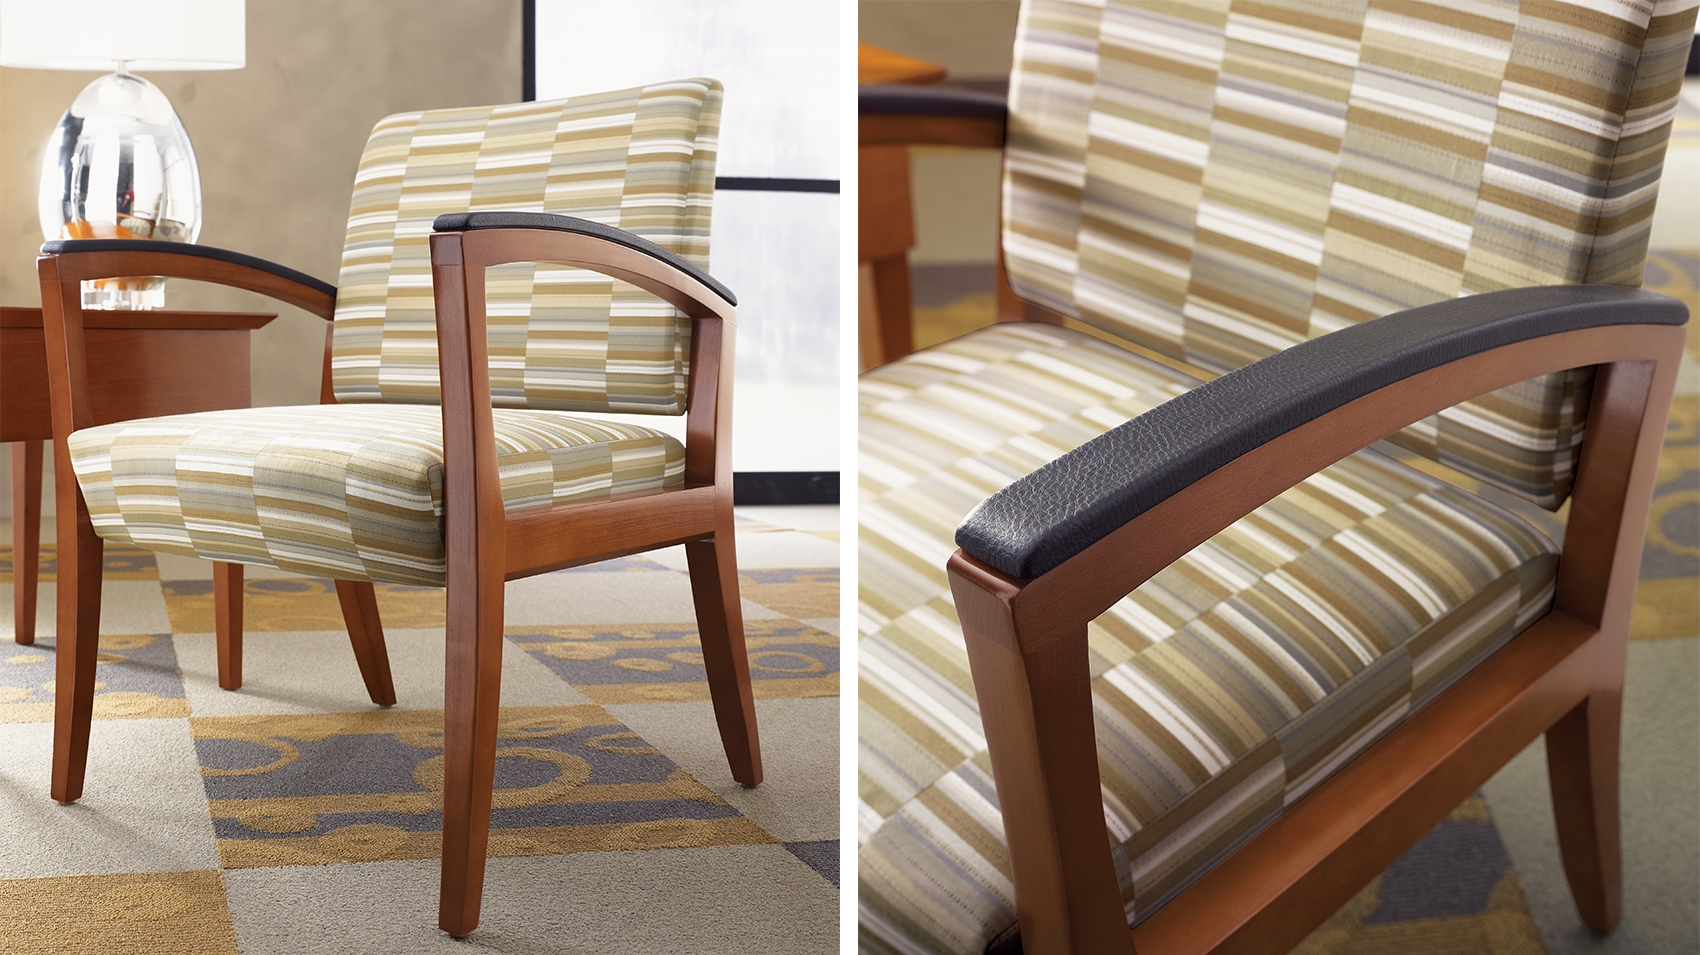 Waiting Room Furnishings Virginia Maryland DC All Business Systems Amp Design